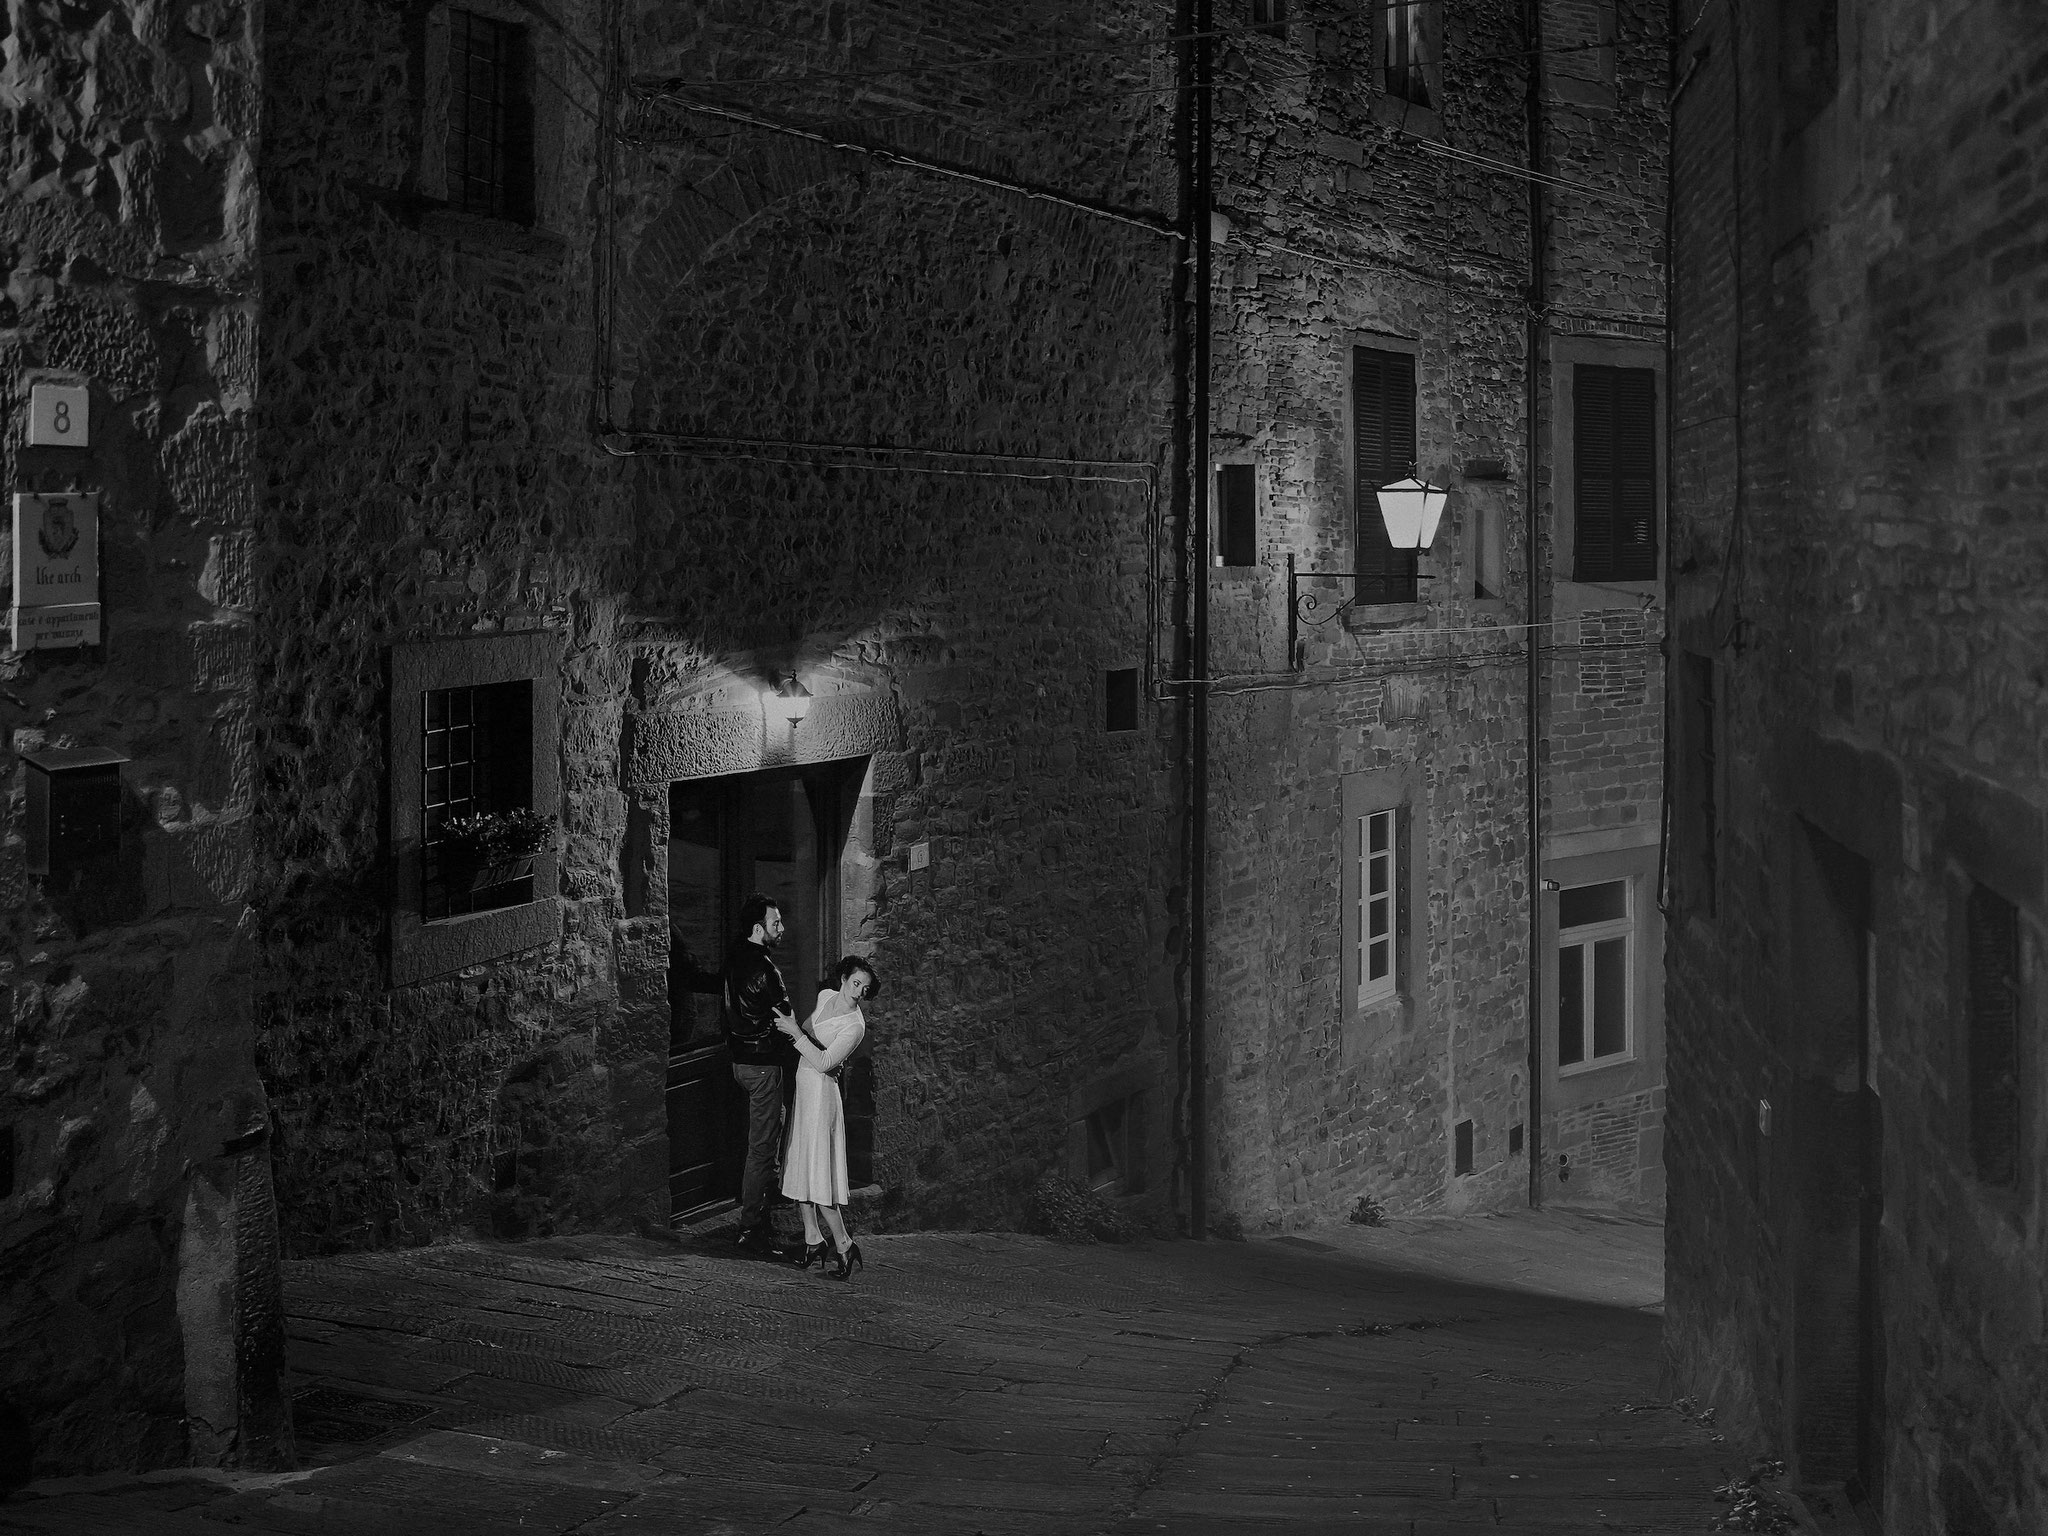 Scene from the cinematic series An End to Jealousy